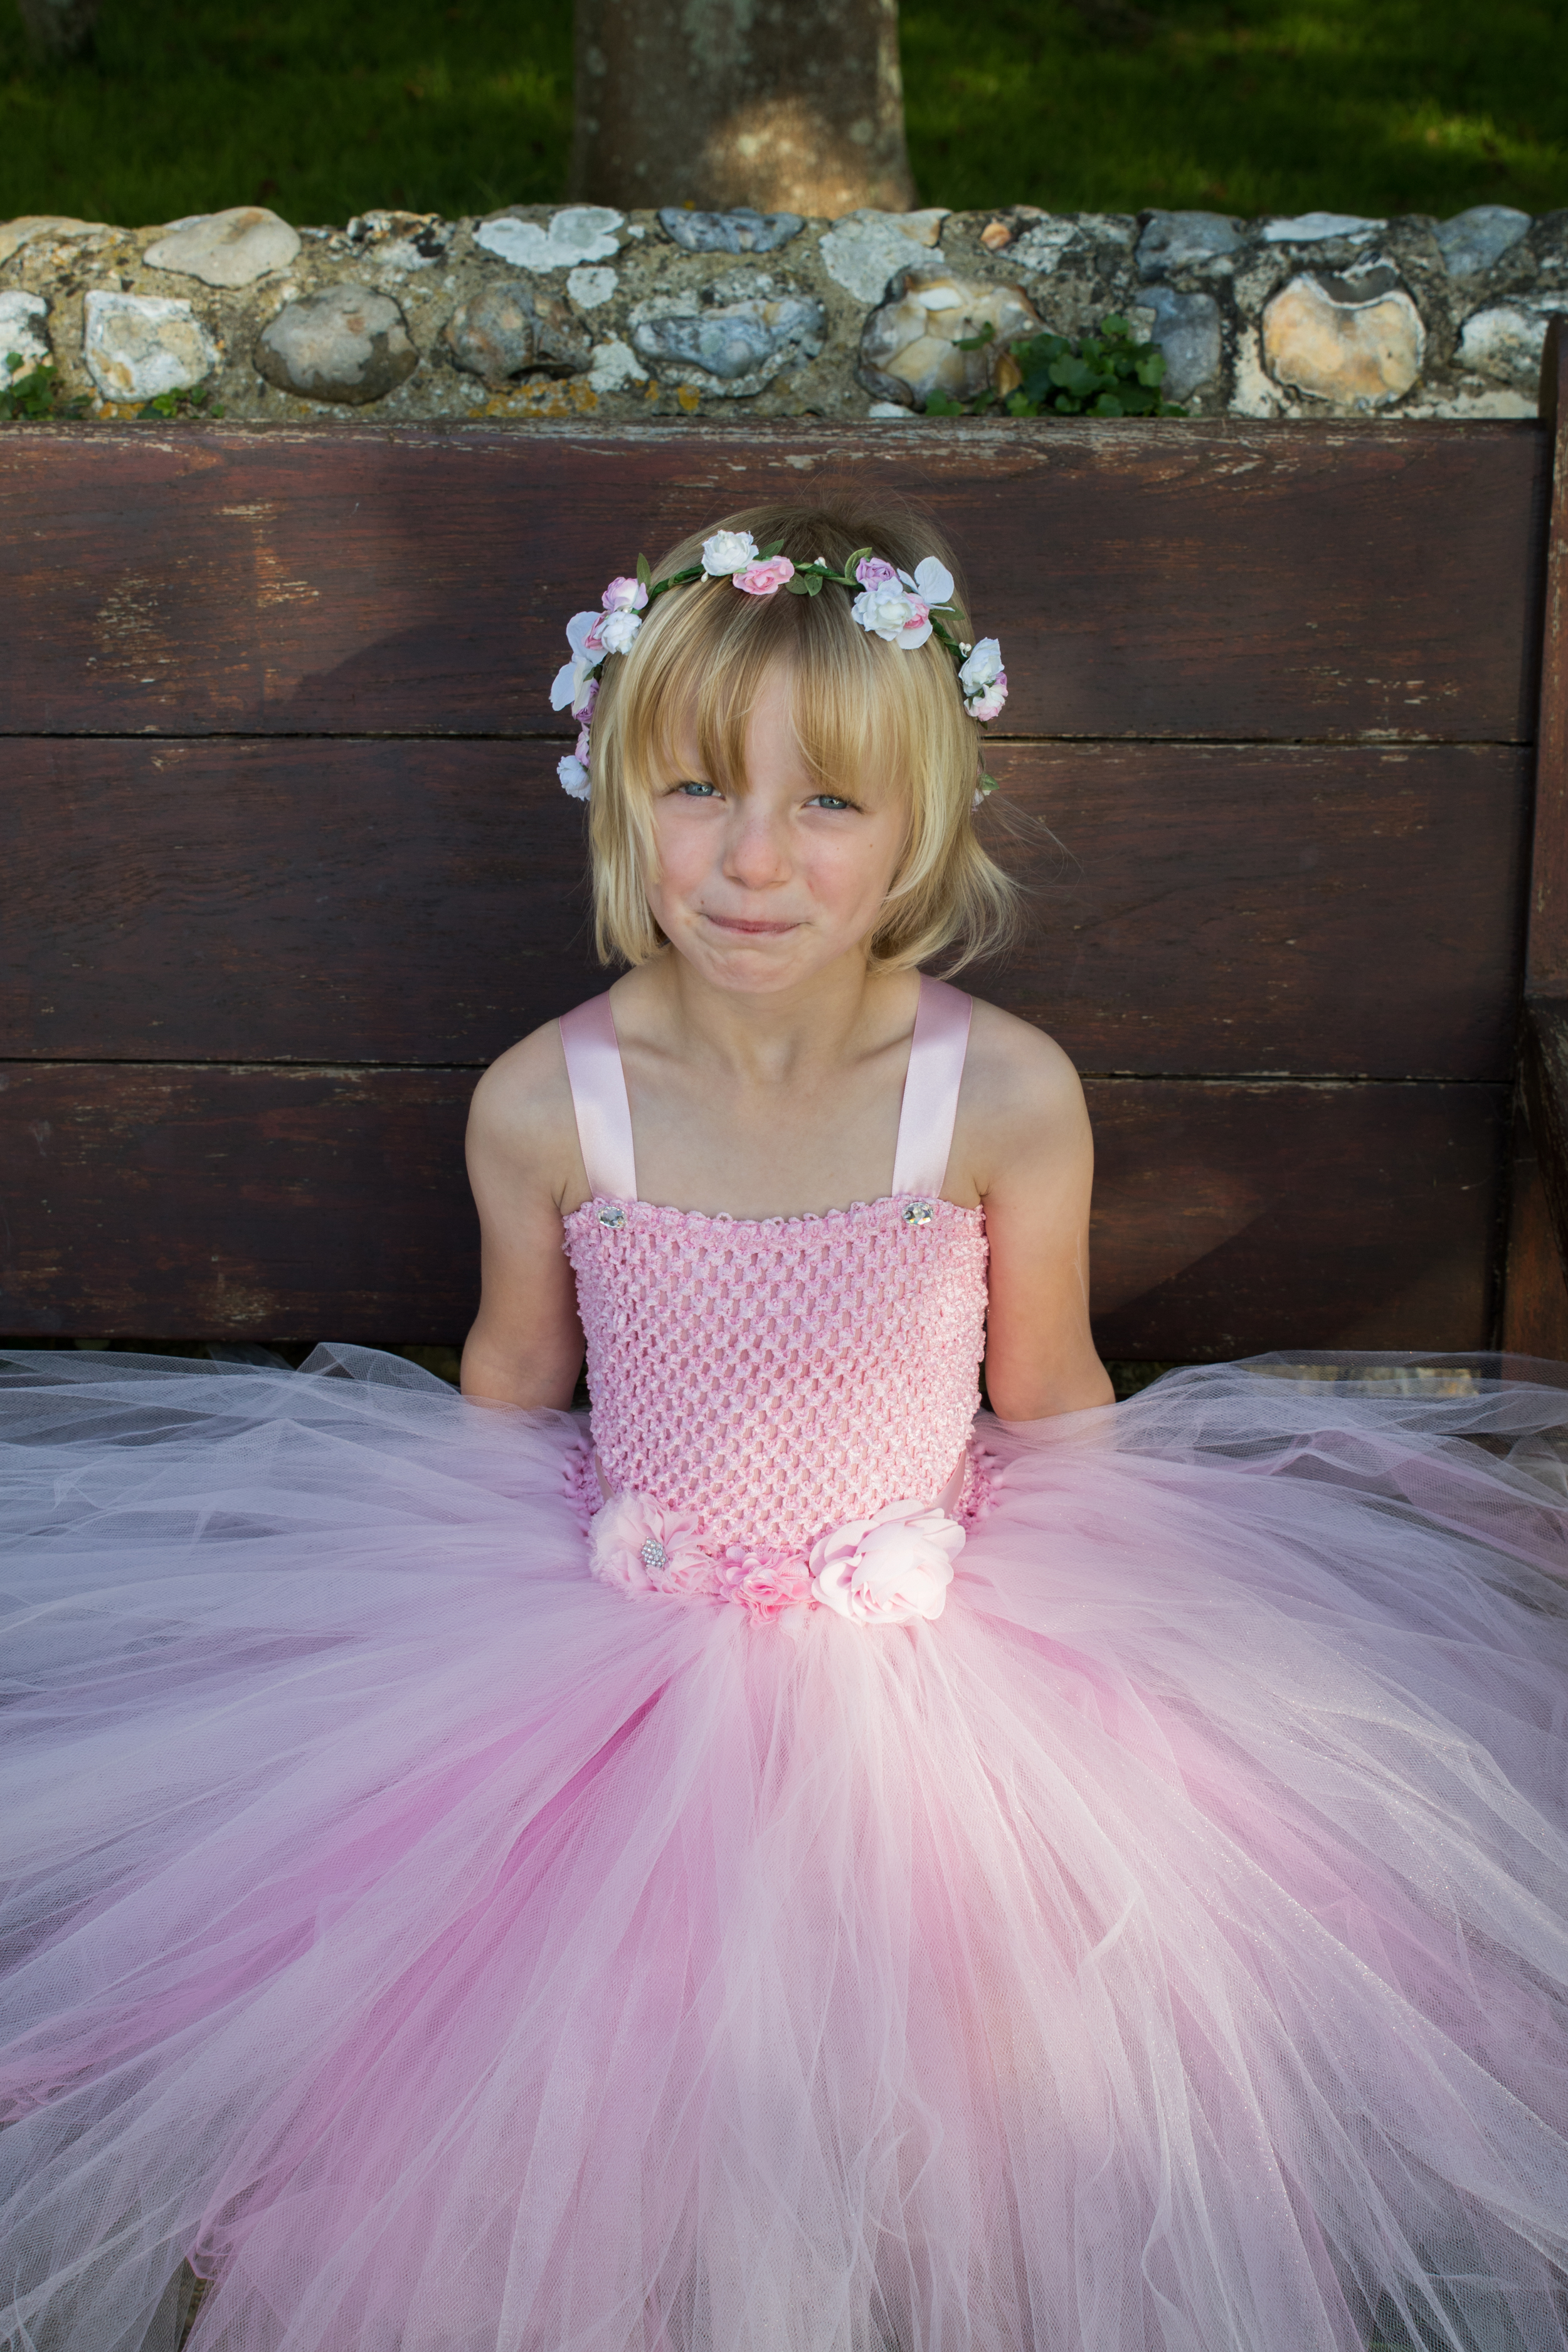 Rose:   Pink crochet top with alternating light pink and dark pink tulle layers. Decorated with various fabric flowers.